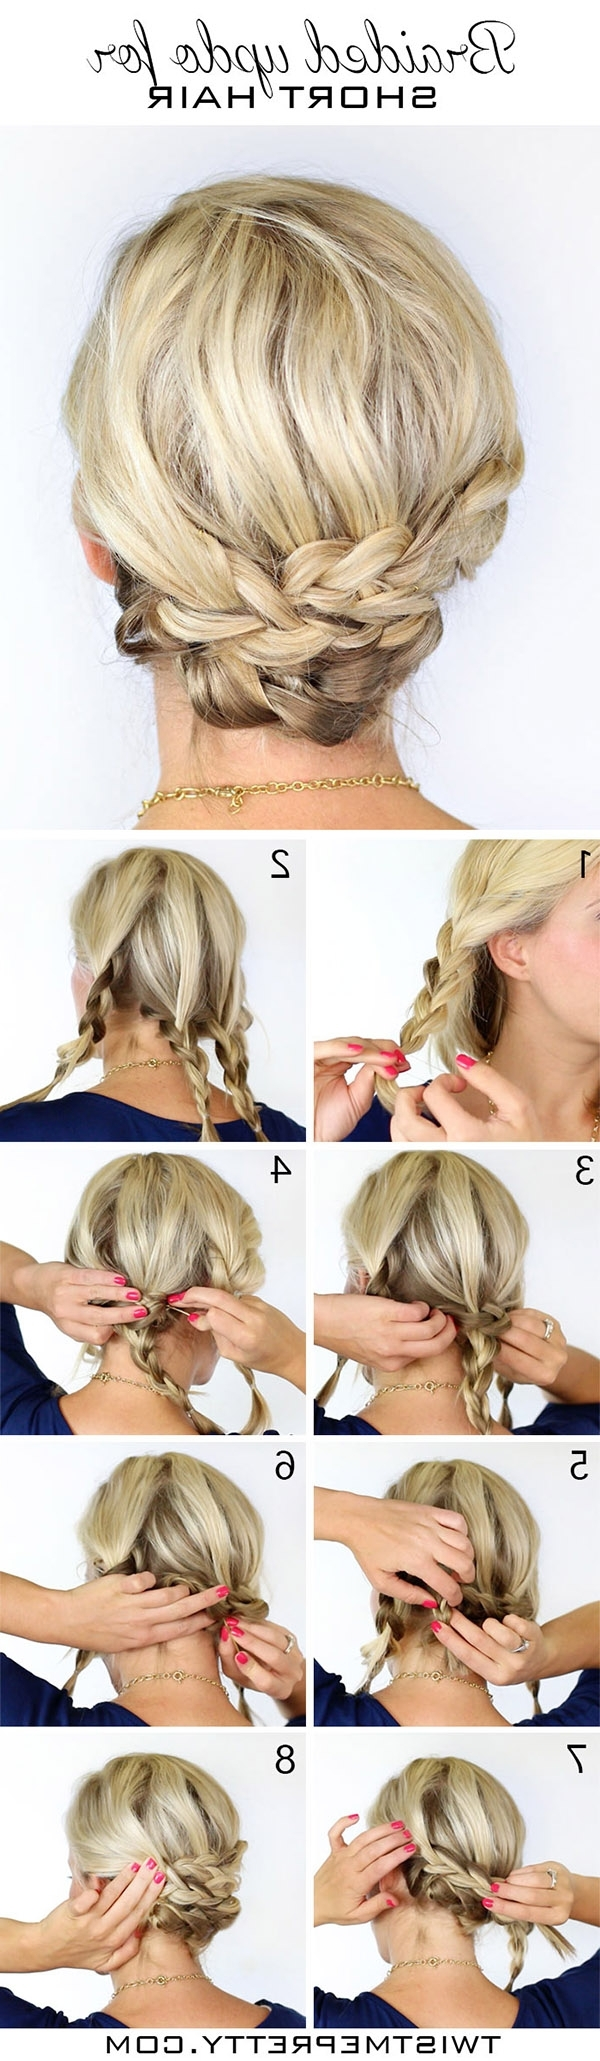 20 Diy Wedding Hairstyles With Tutorials To Try On Your Own Pertaining To Favorite Diy Simple Wedding Hairstyles For Long Hair (View 13 of 15)